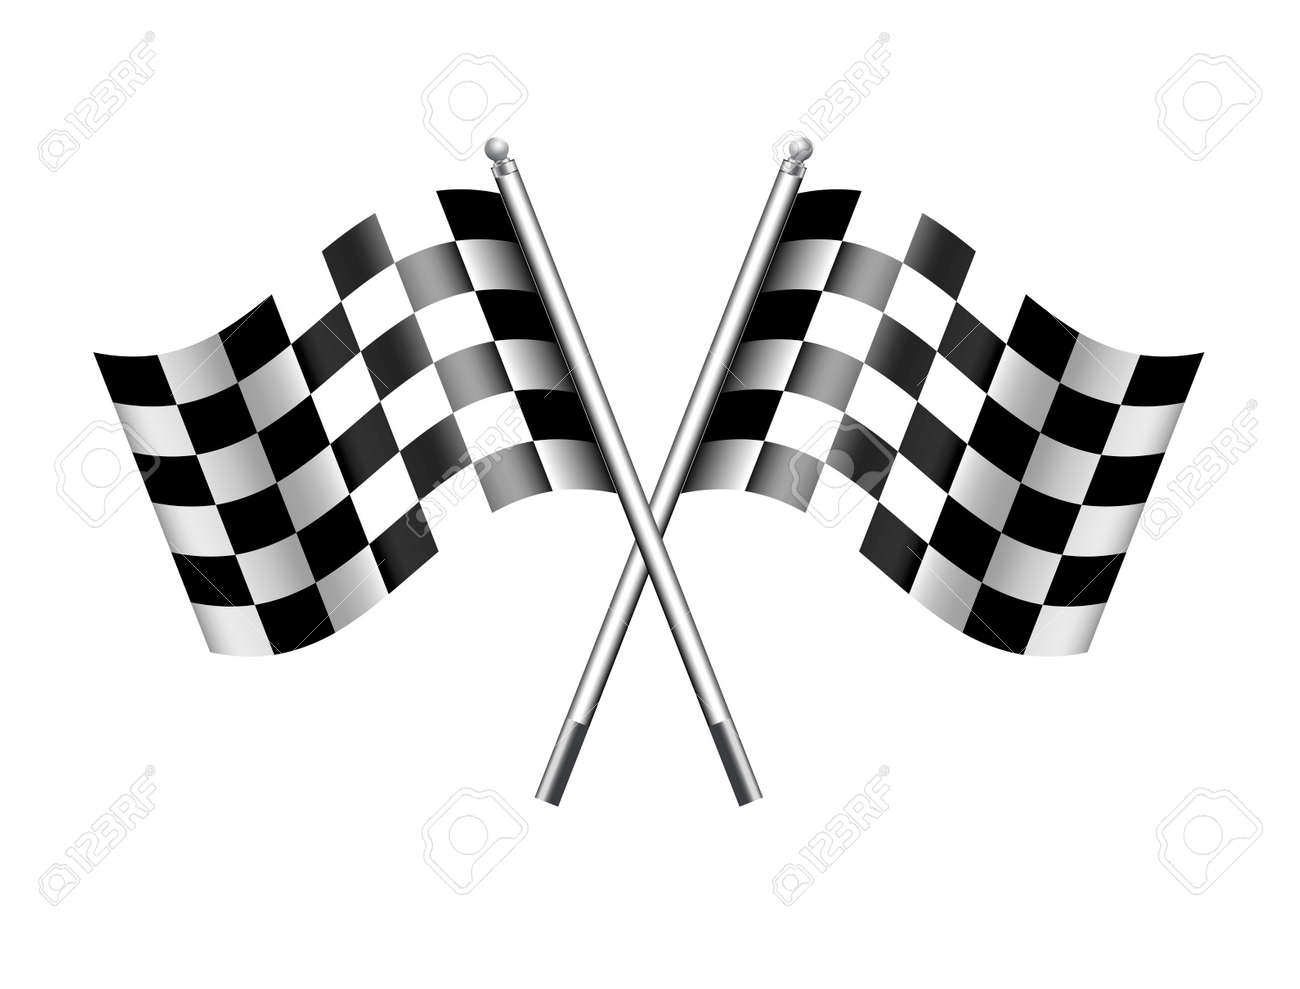 Checkered Chequered Flags Finish Flag - 40699167